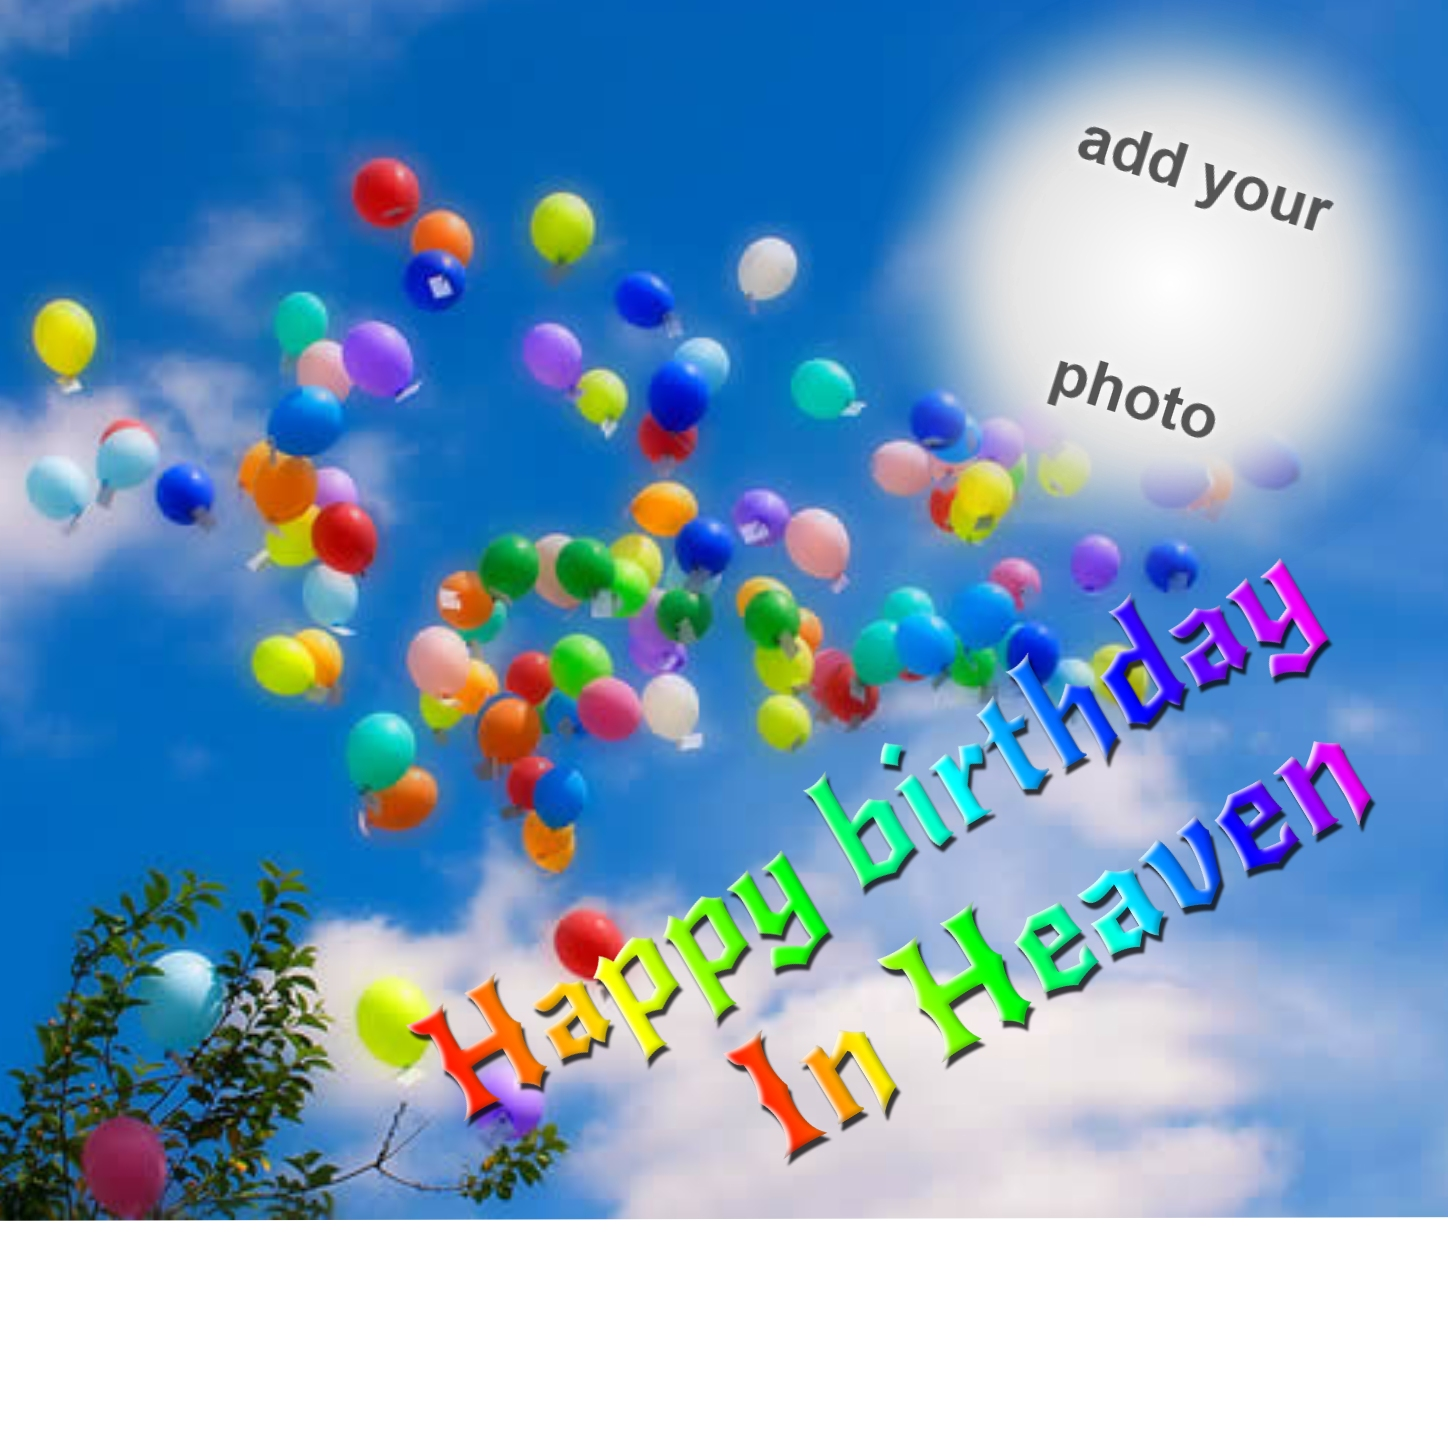 Imikimi Zo Birthday Frames Happy In Heaven Balloons And Clouds Og Beautiful Birthdays